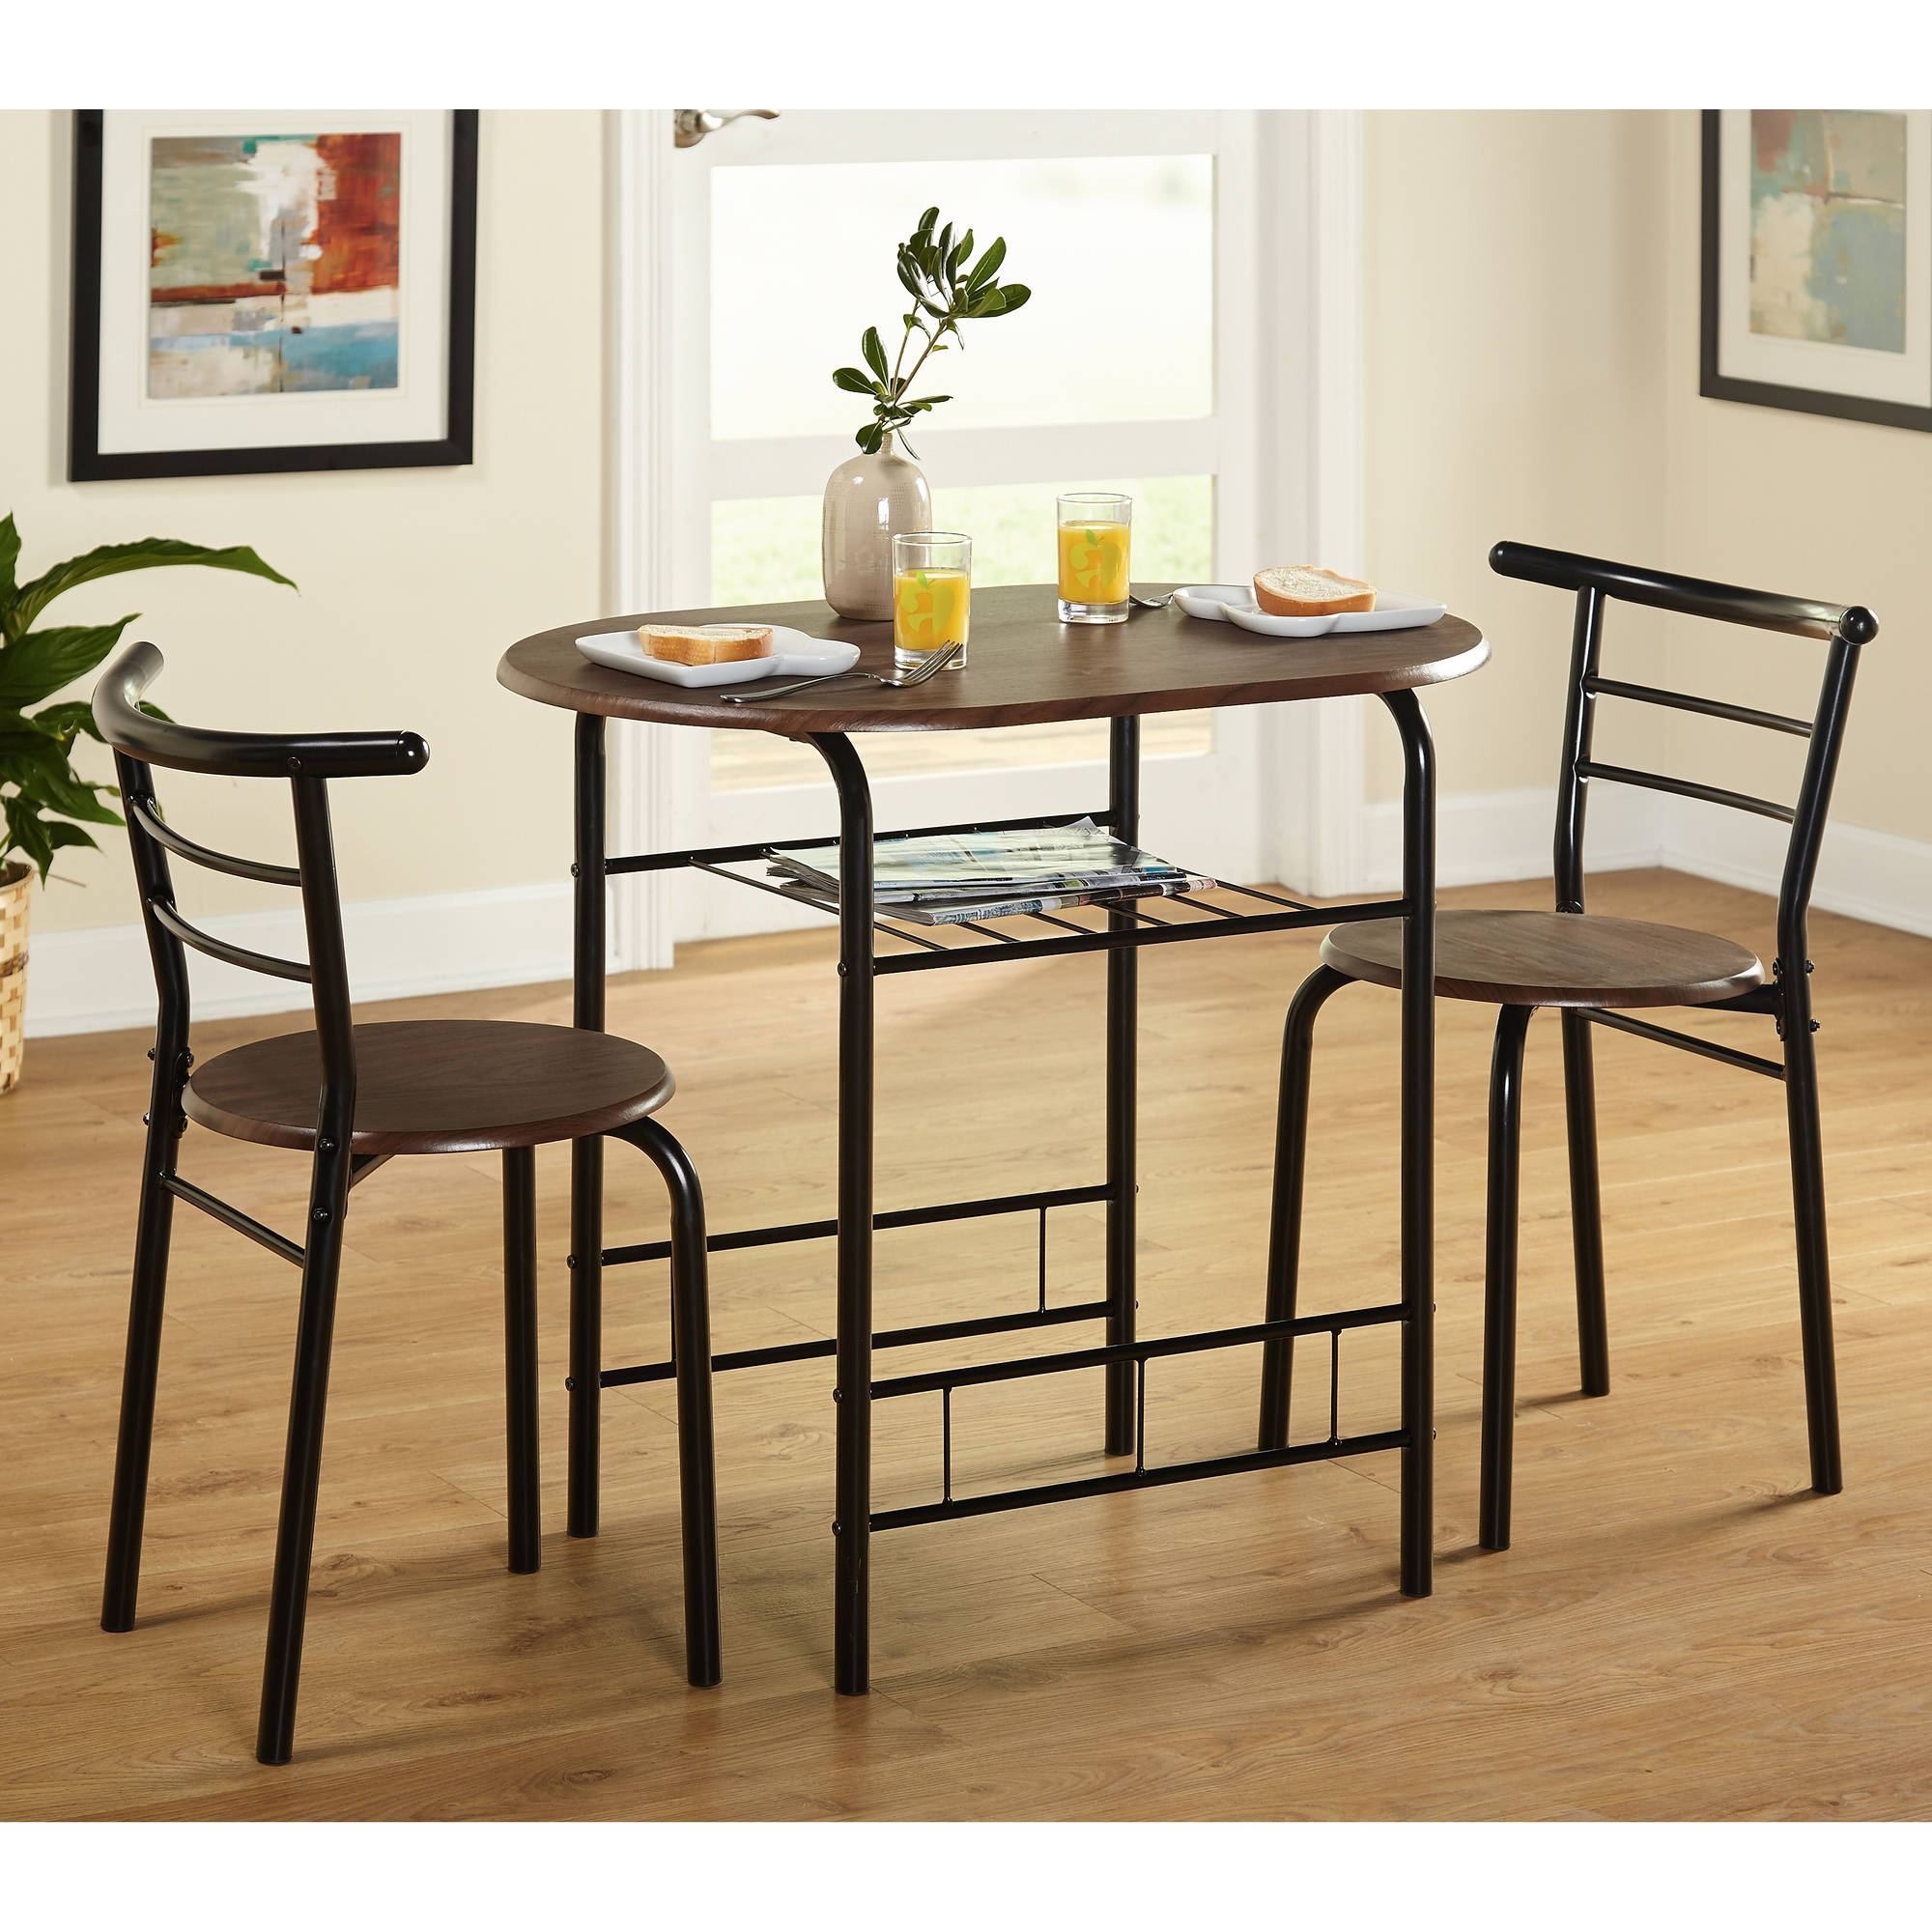 : walmart table set - pezcame.com